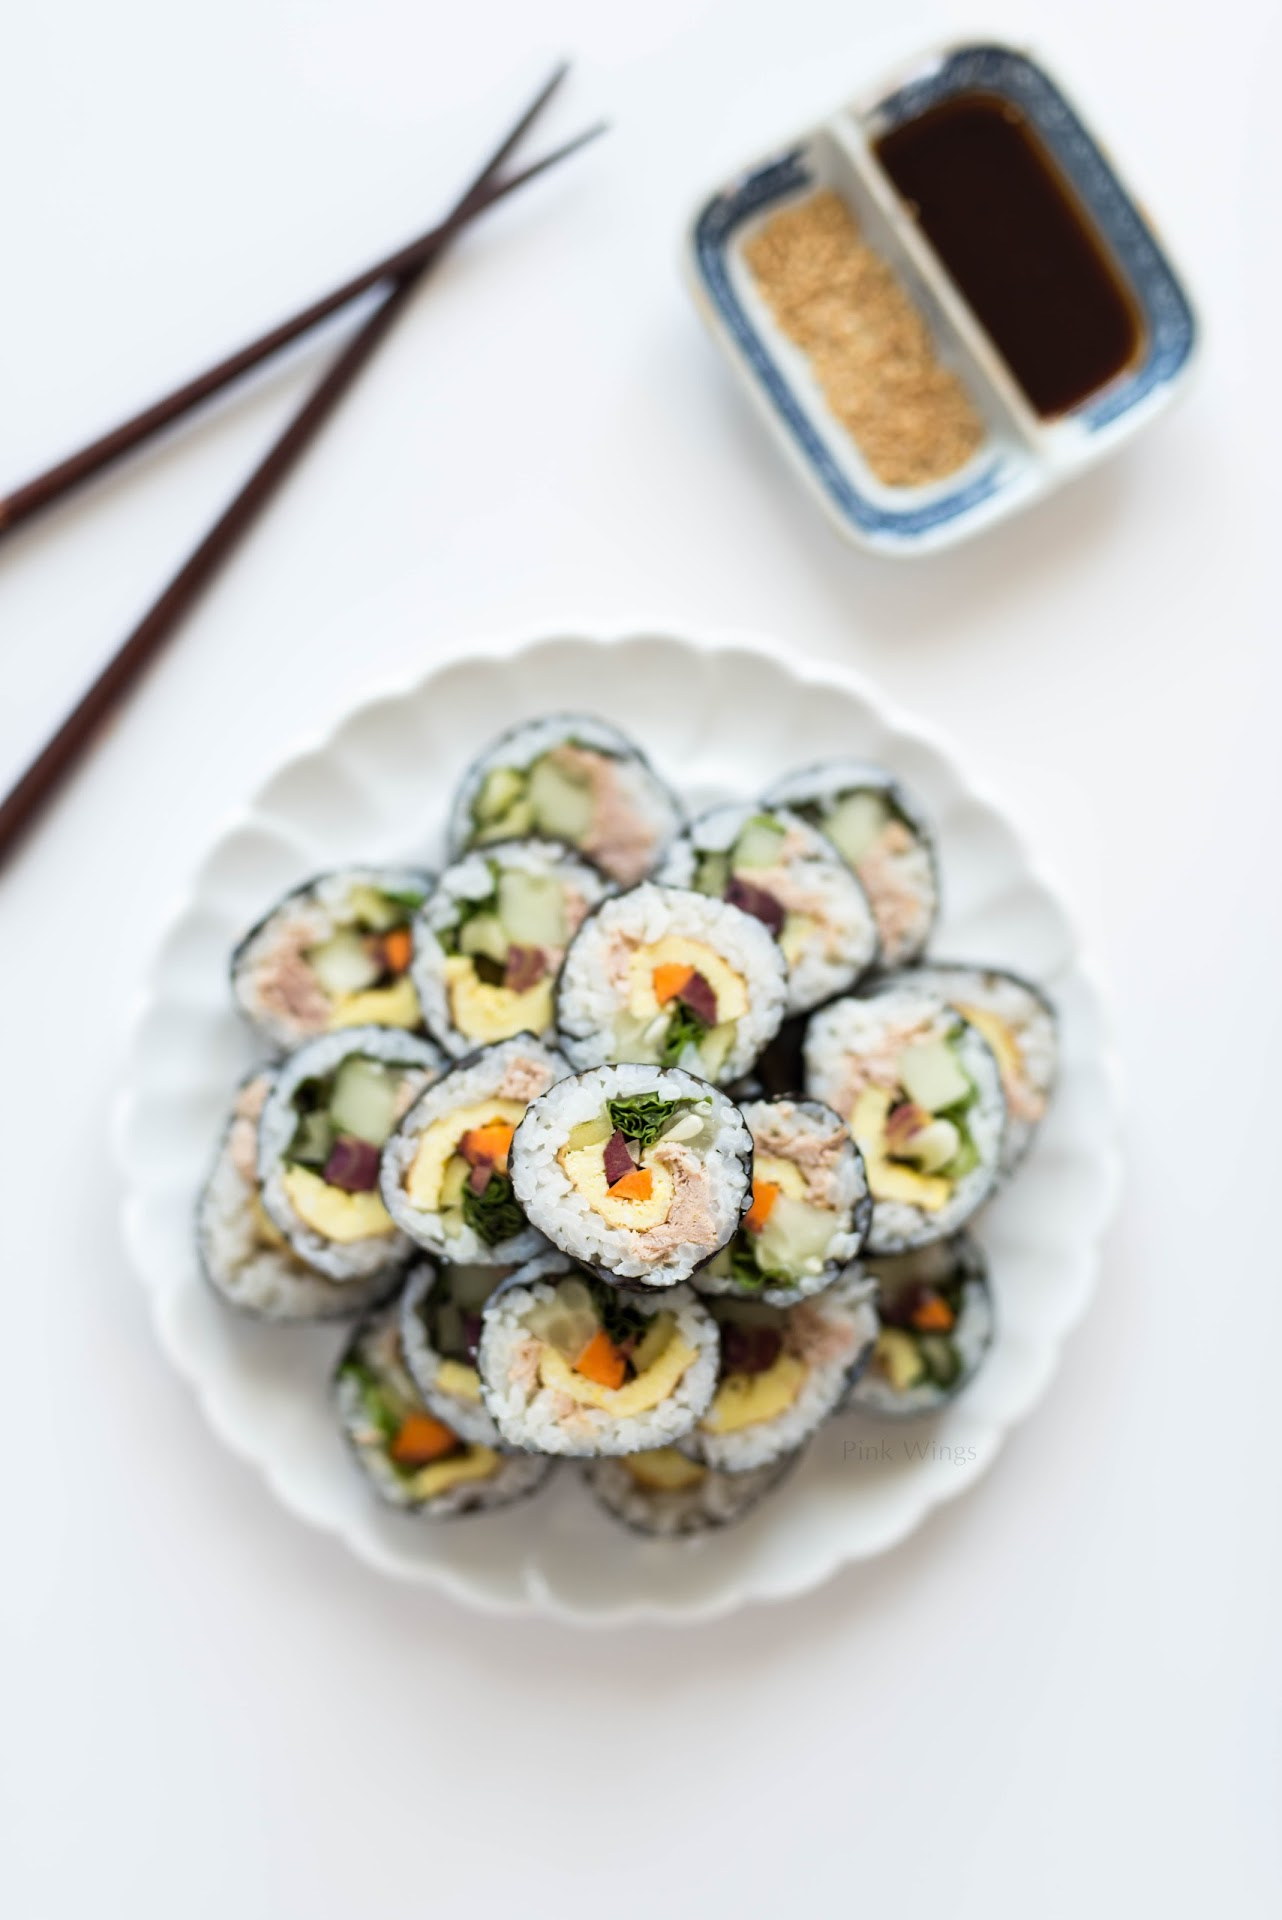 tuna kimbap recipe, korean food blogger, asian, sushi, healthy, veggie wraps, road trip food